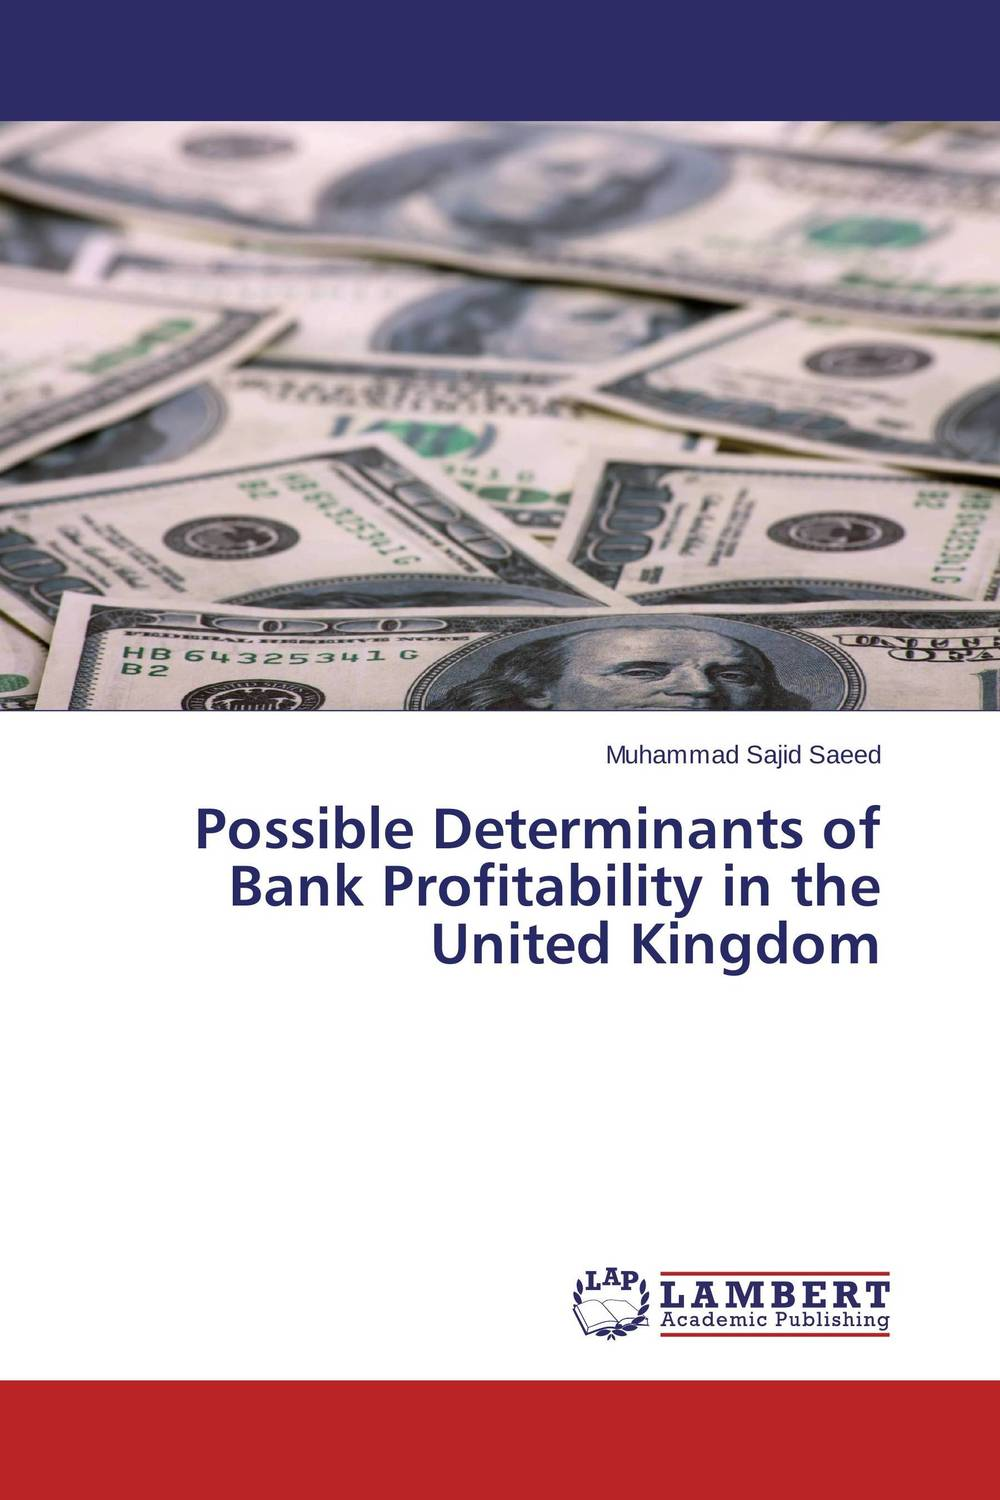 Possible Determinants of Bank Profitability in the United Kingdom